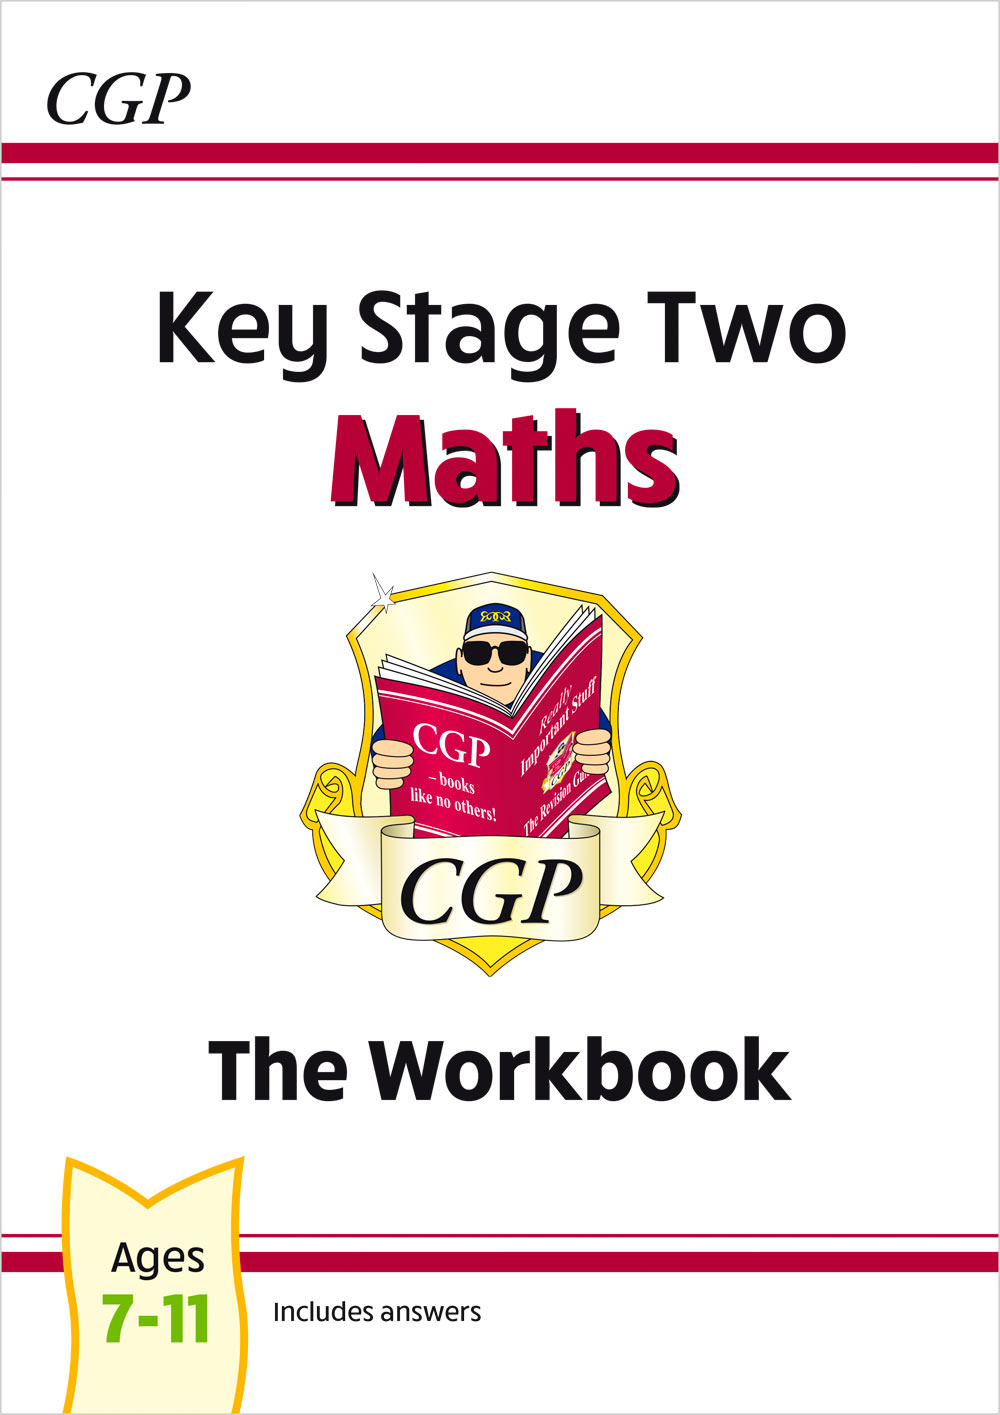 MHW27 - New KS2 Maths Workbook - Ages 7-11